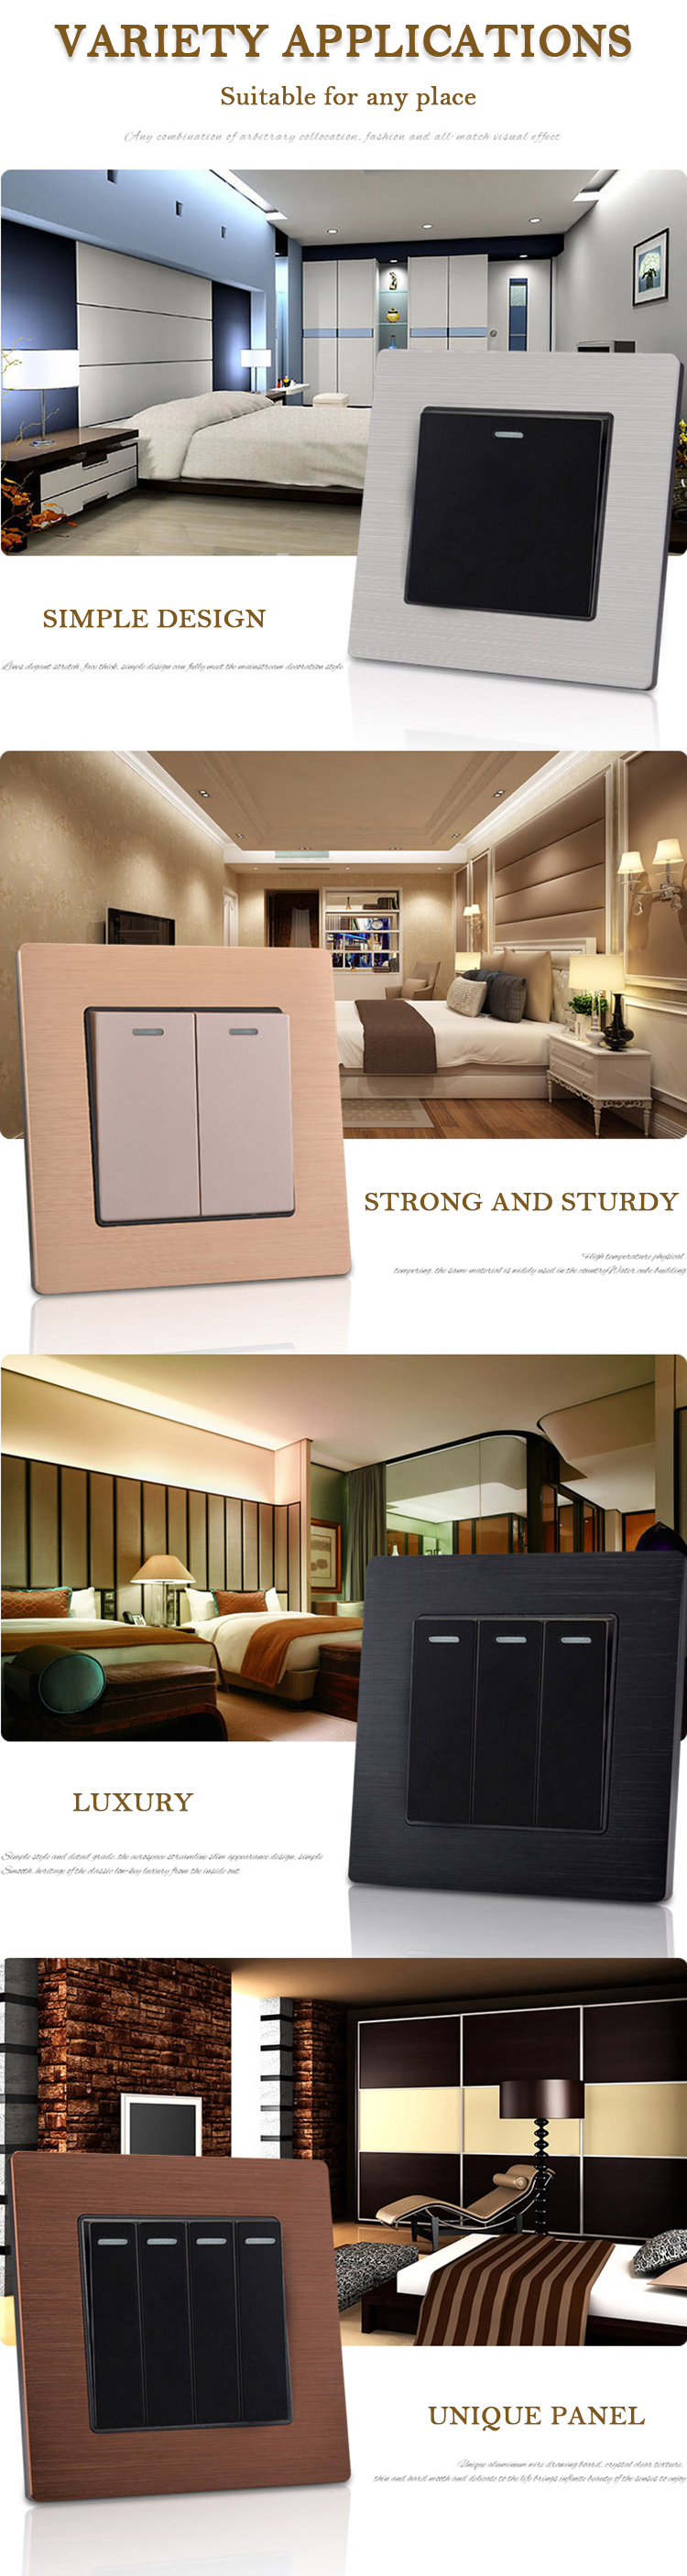 European power 10a recessed doorbell light switch